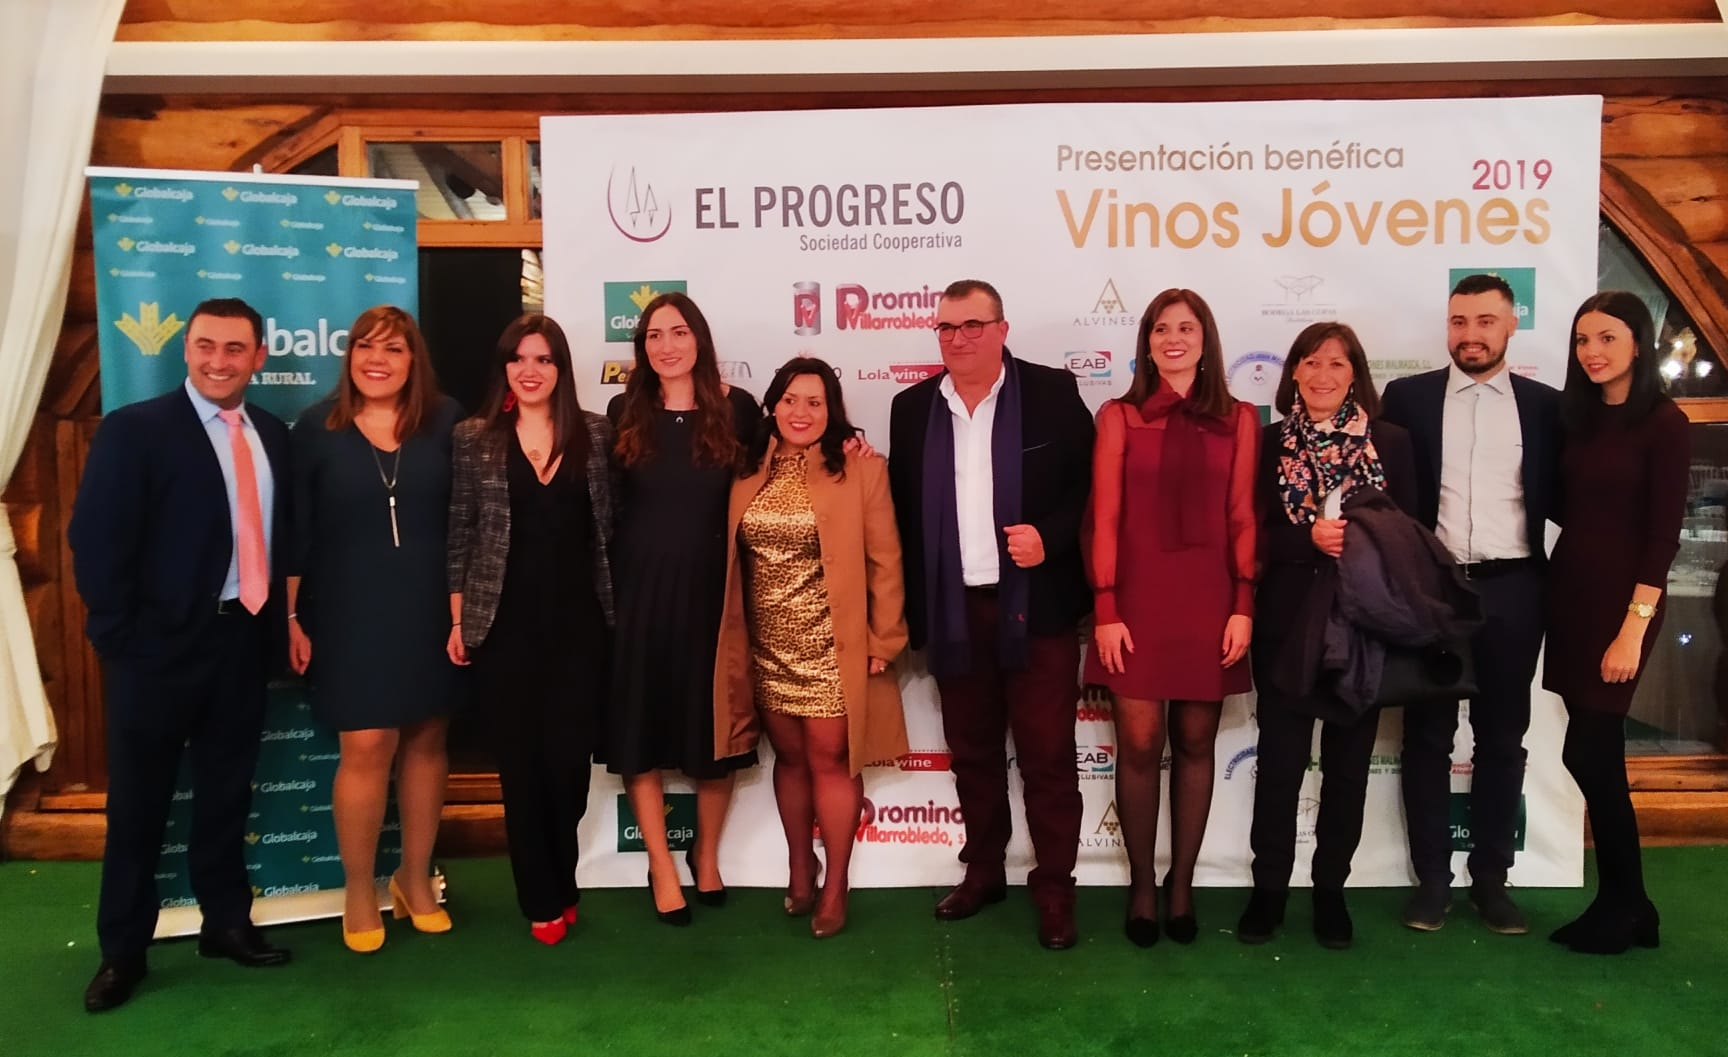 https://blog.globalcaja.es/wp-content/uploads/2019/11/Vinos-el-progreso.jpg